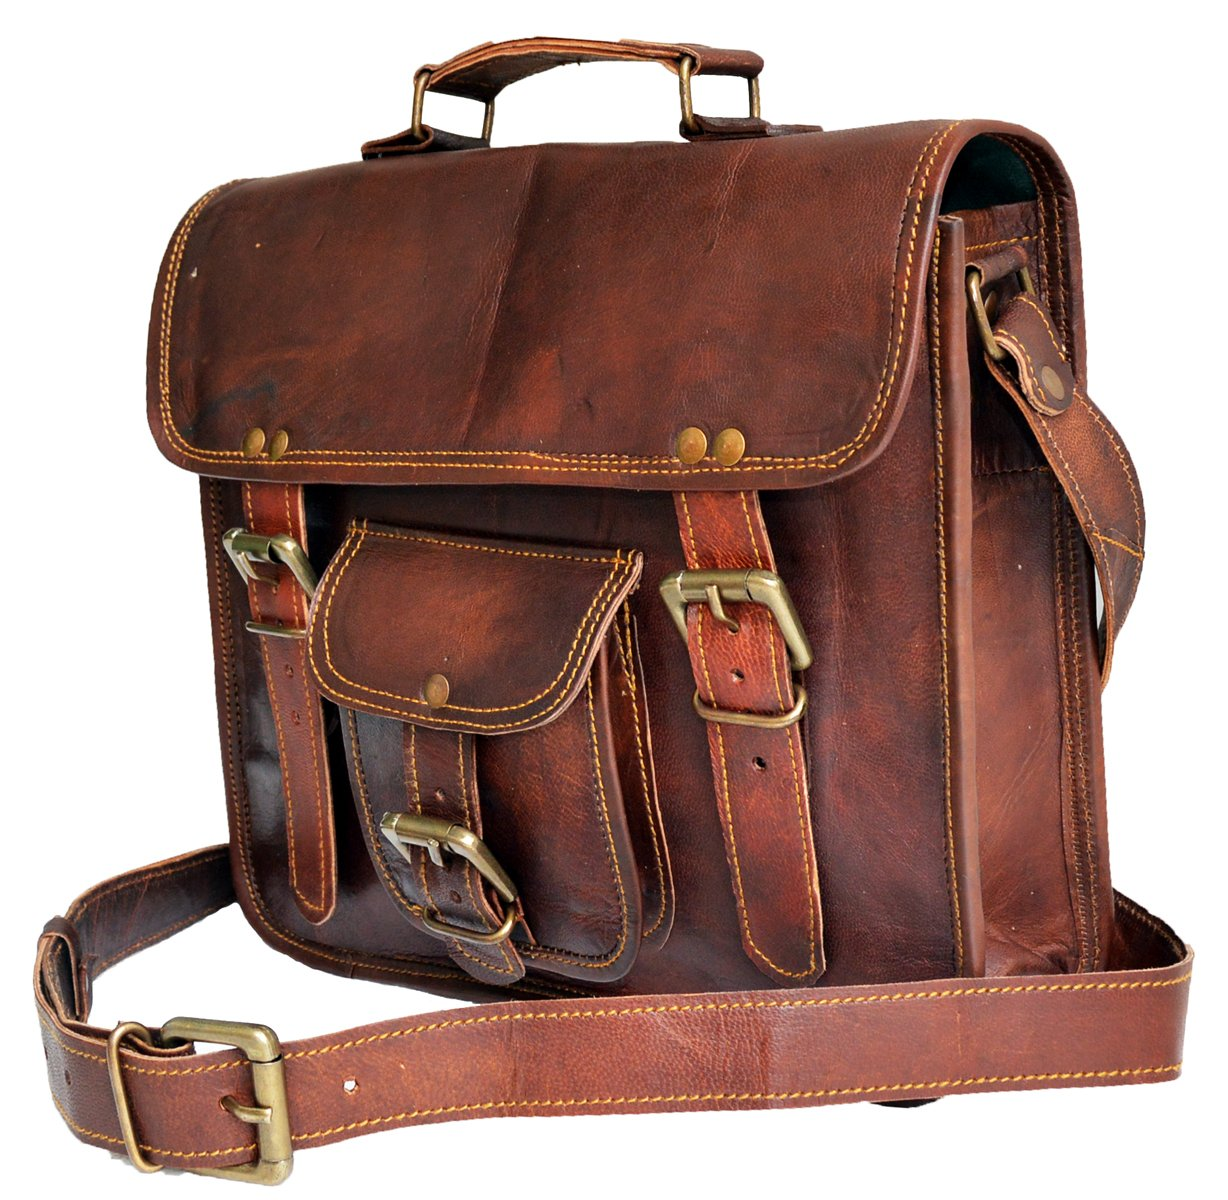 11 Men's Genuine Leather Small Briefcase Messenger Satchel Ipad Tab Tablet Bag Jaald 11PH